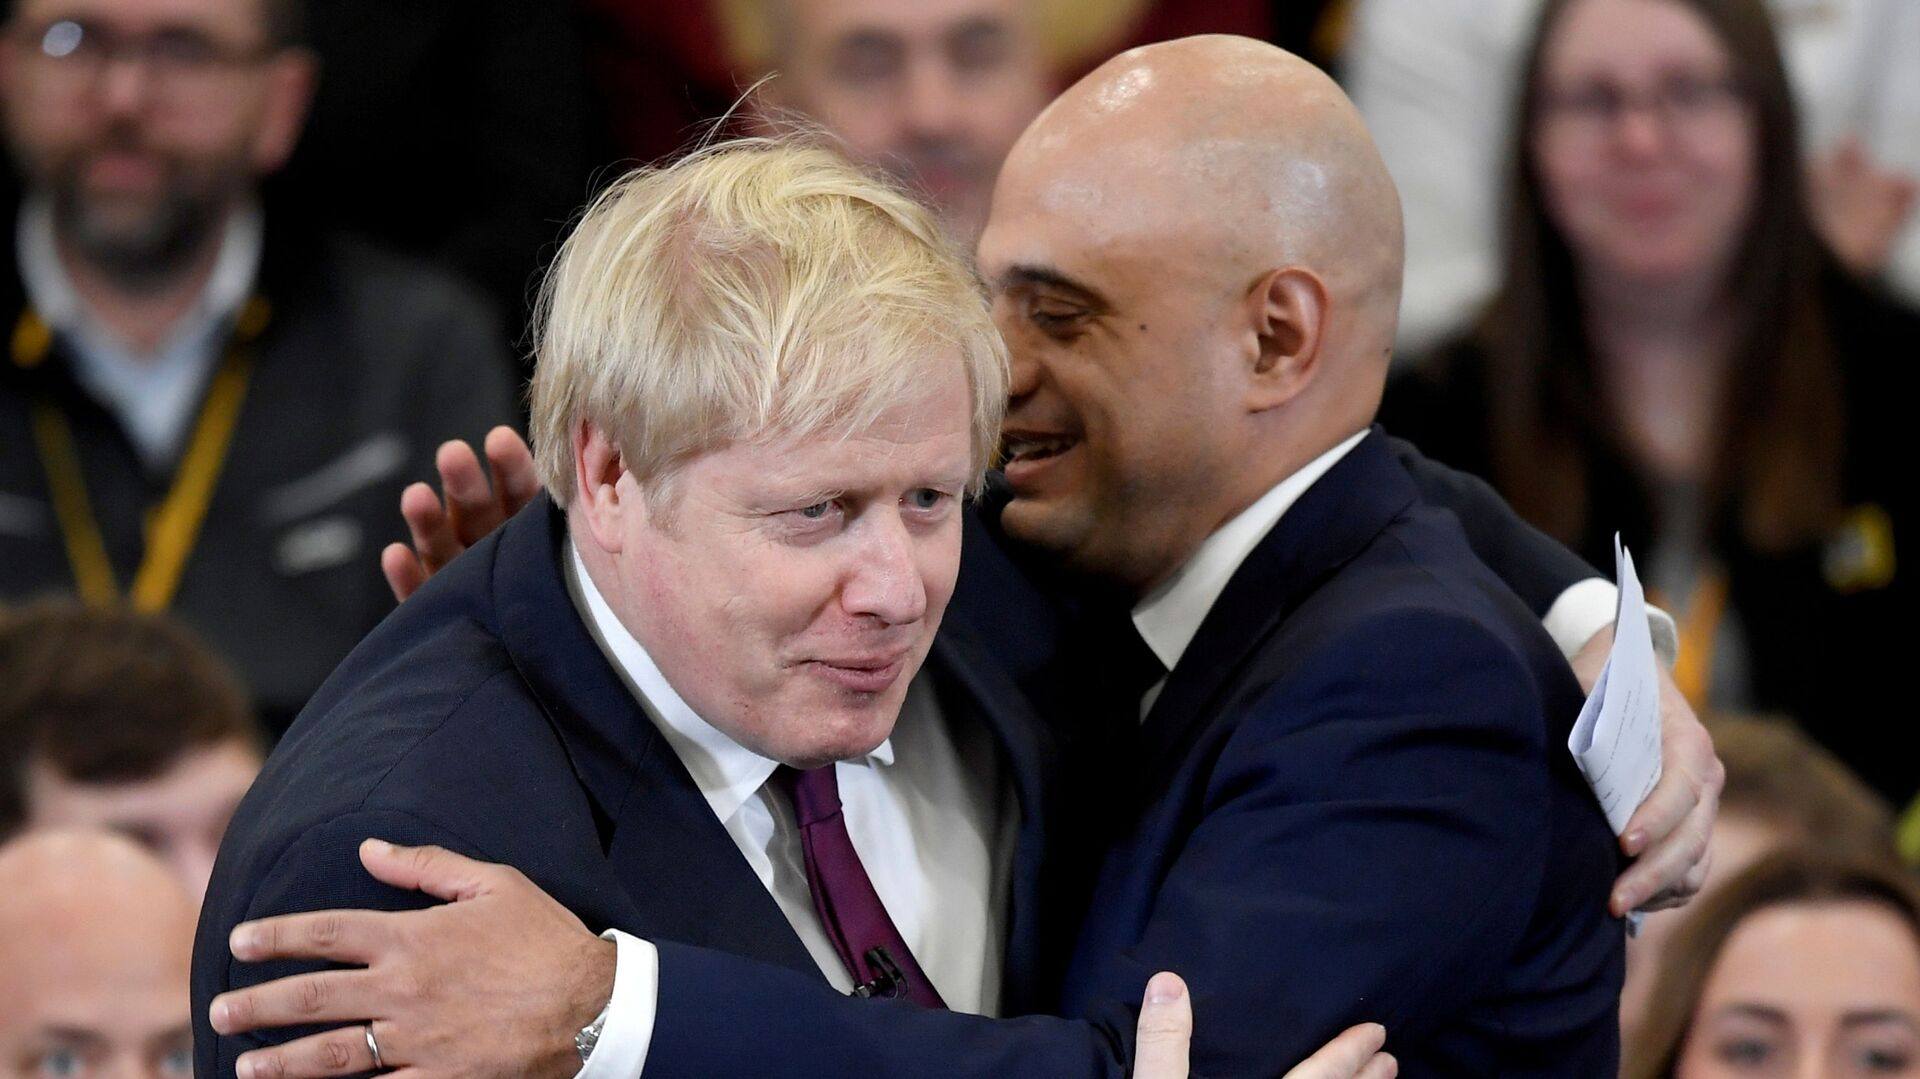 Britain's Prime Minister Boris Johnson is embraced by Britain's Chancellor of the Exchequer Sajid Javid before speaking to the workers as he visits a JCB factory during his general election campaign in Uttoxeter, Britain, December 10, 2019 - Sputnik International, 1920, 25.07.2021